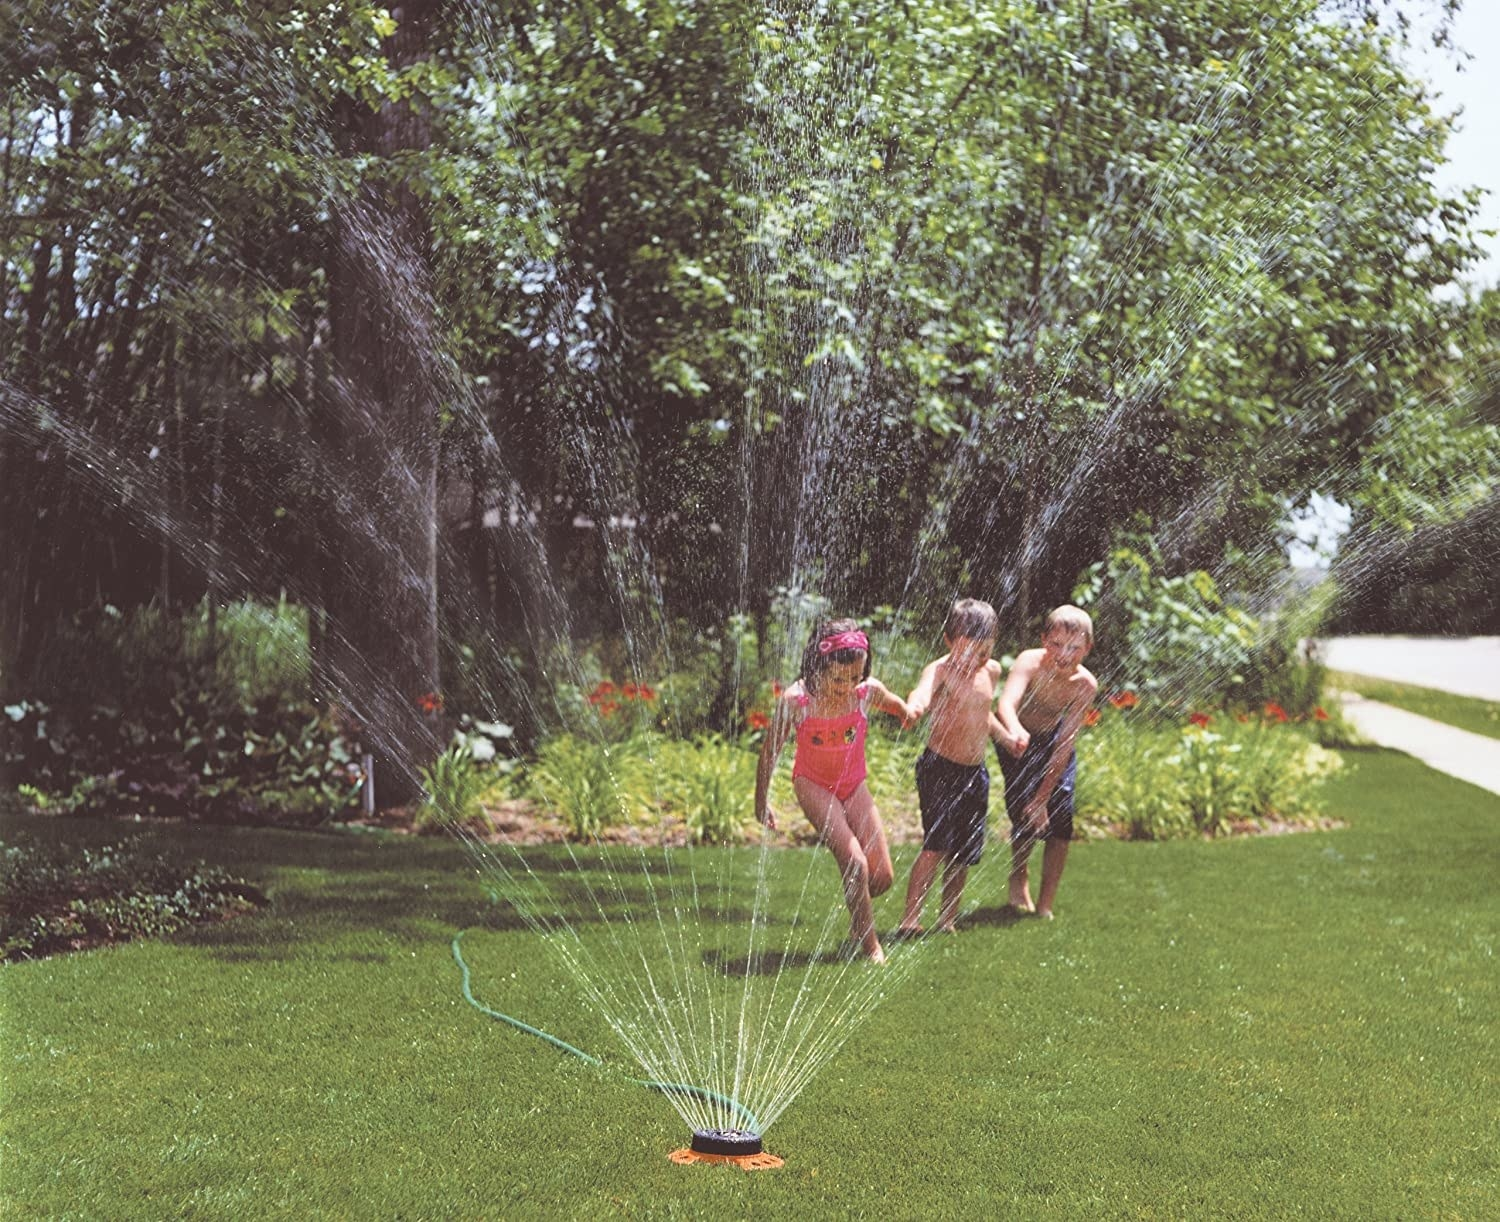 kids running through small round sprinkler spraying water in all directions